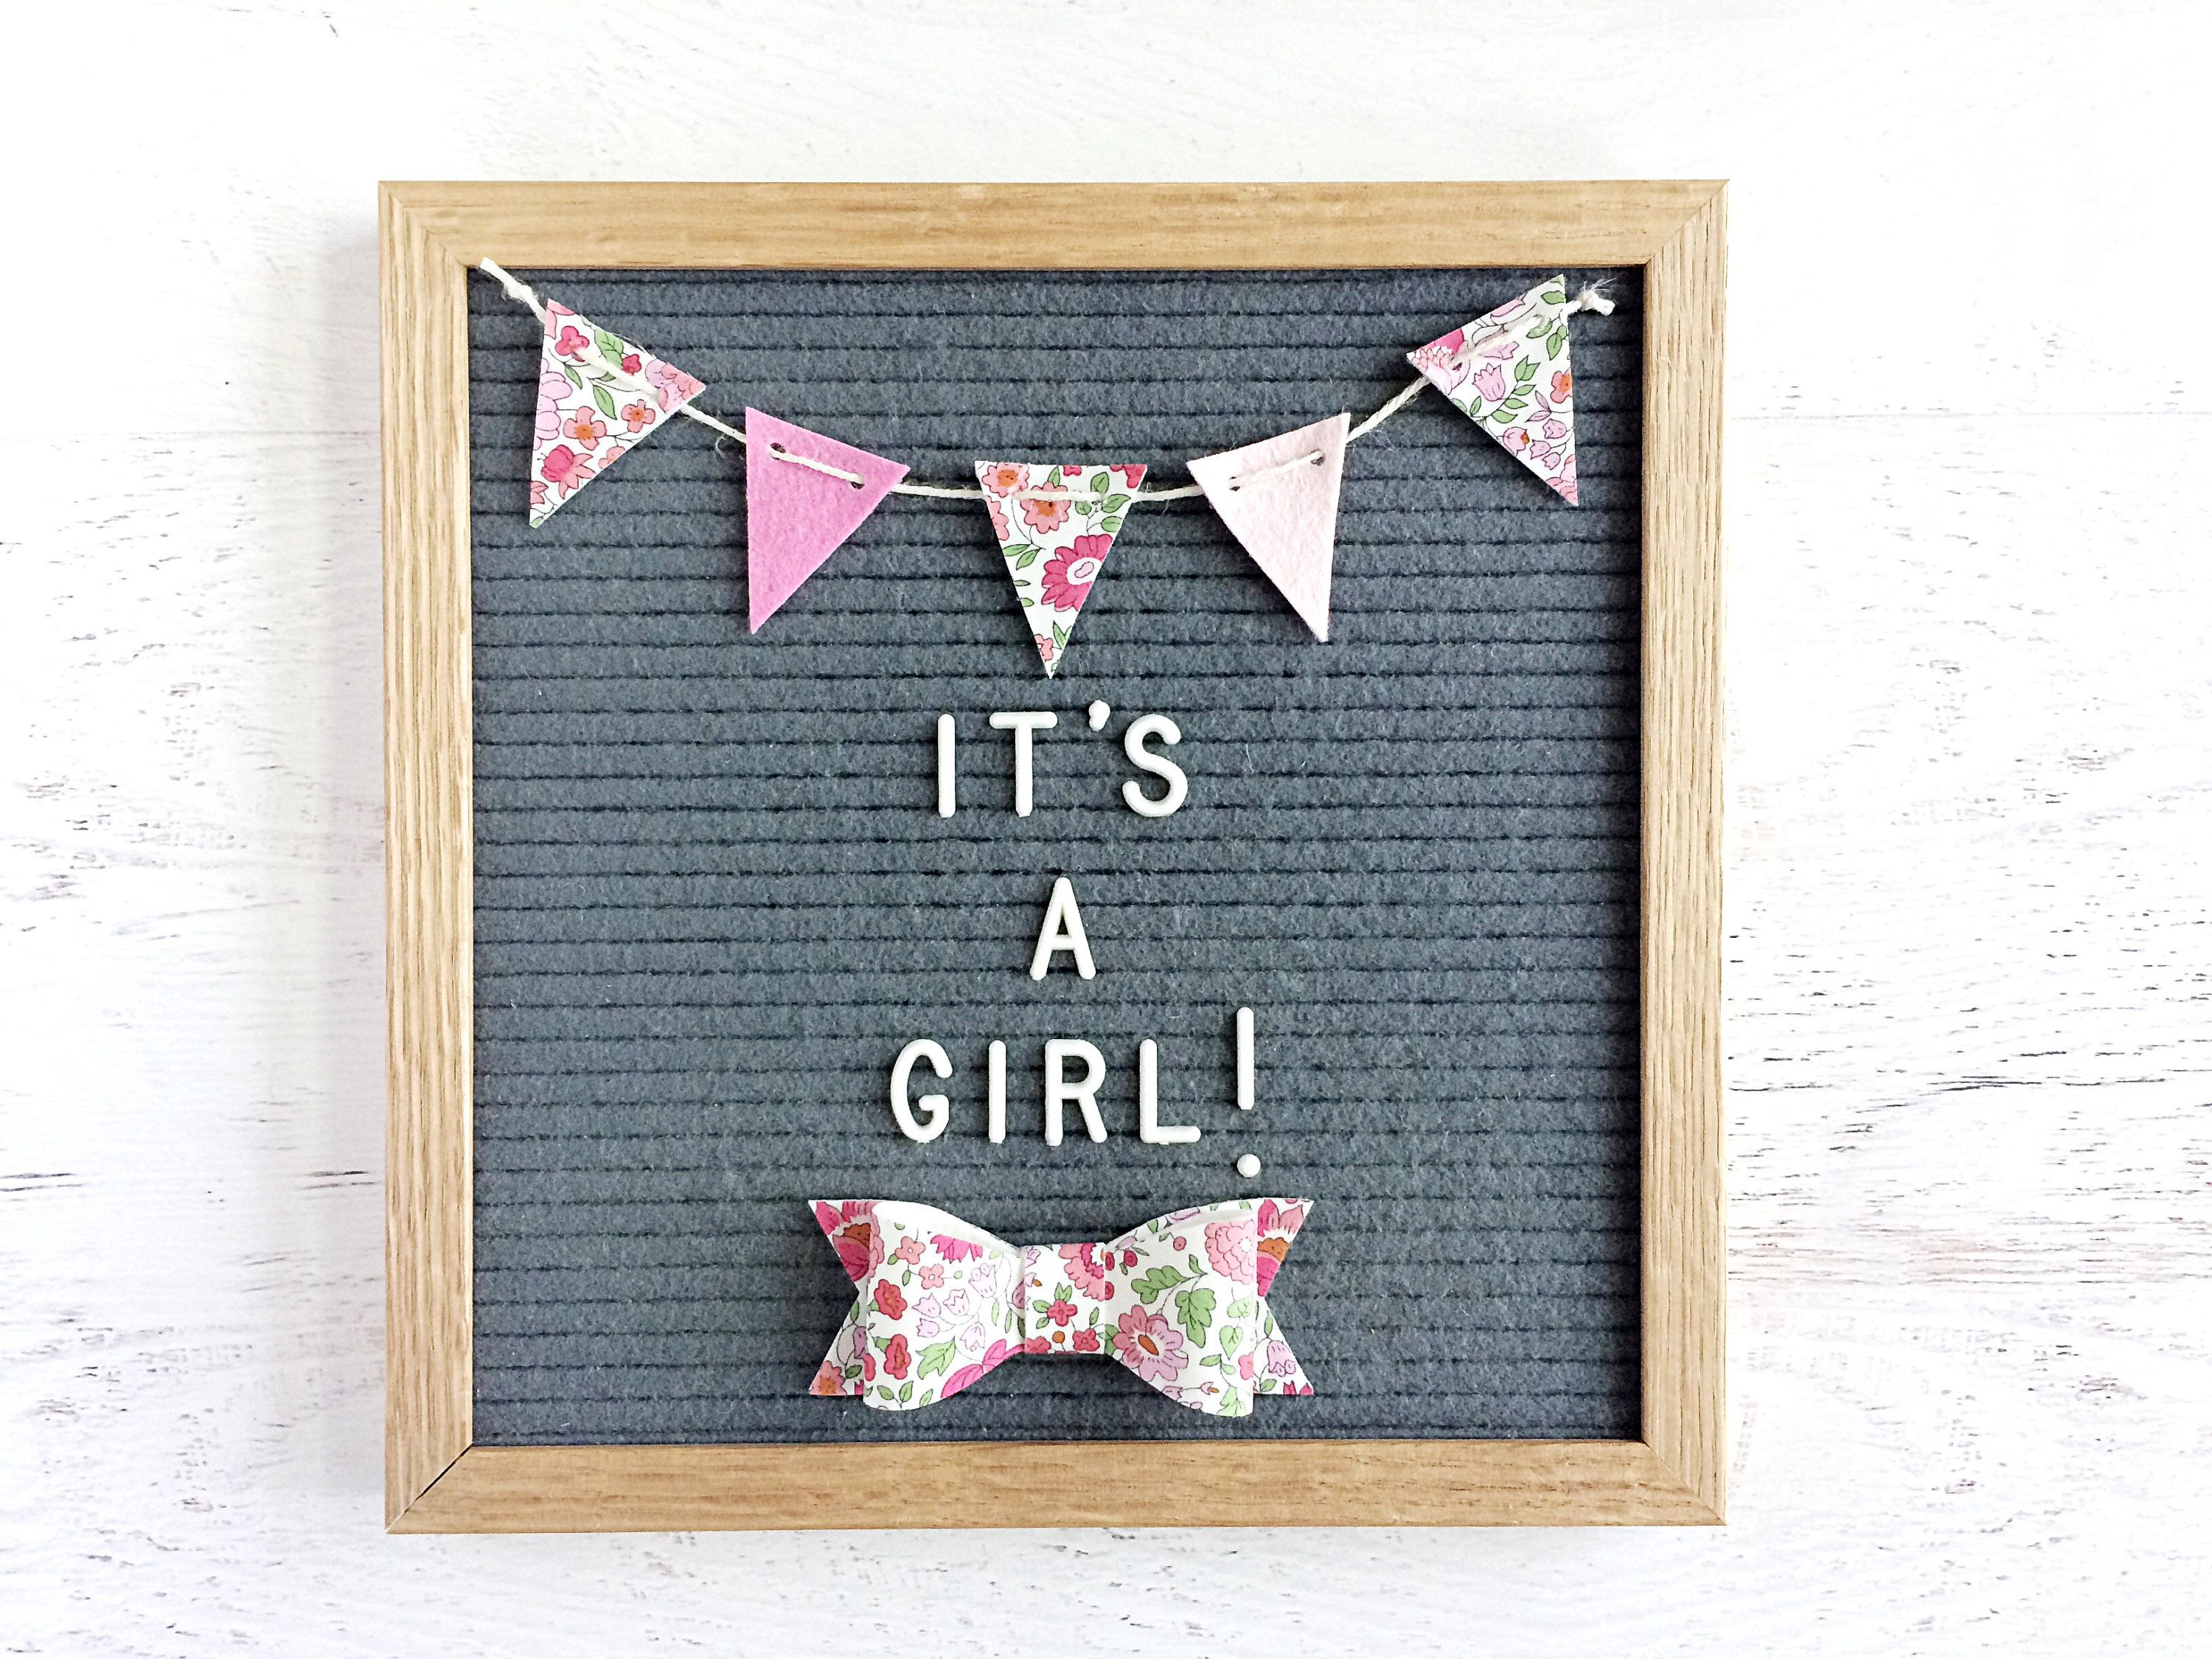 Mini Felt Banner and Bow / Bow Tie for Your Letter Board